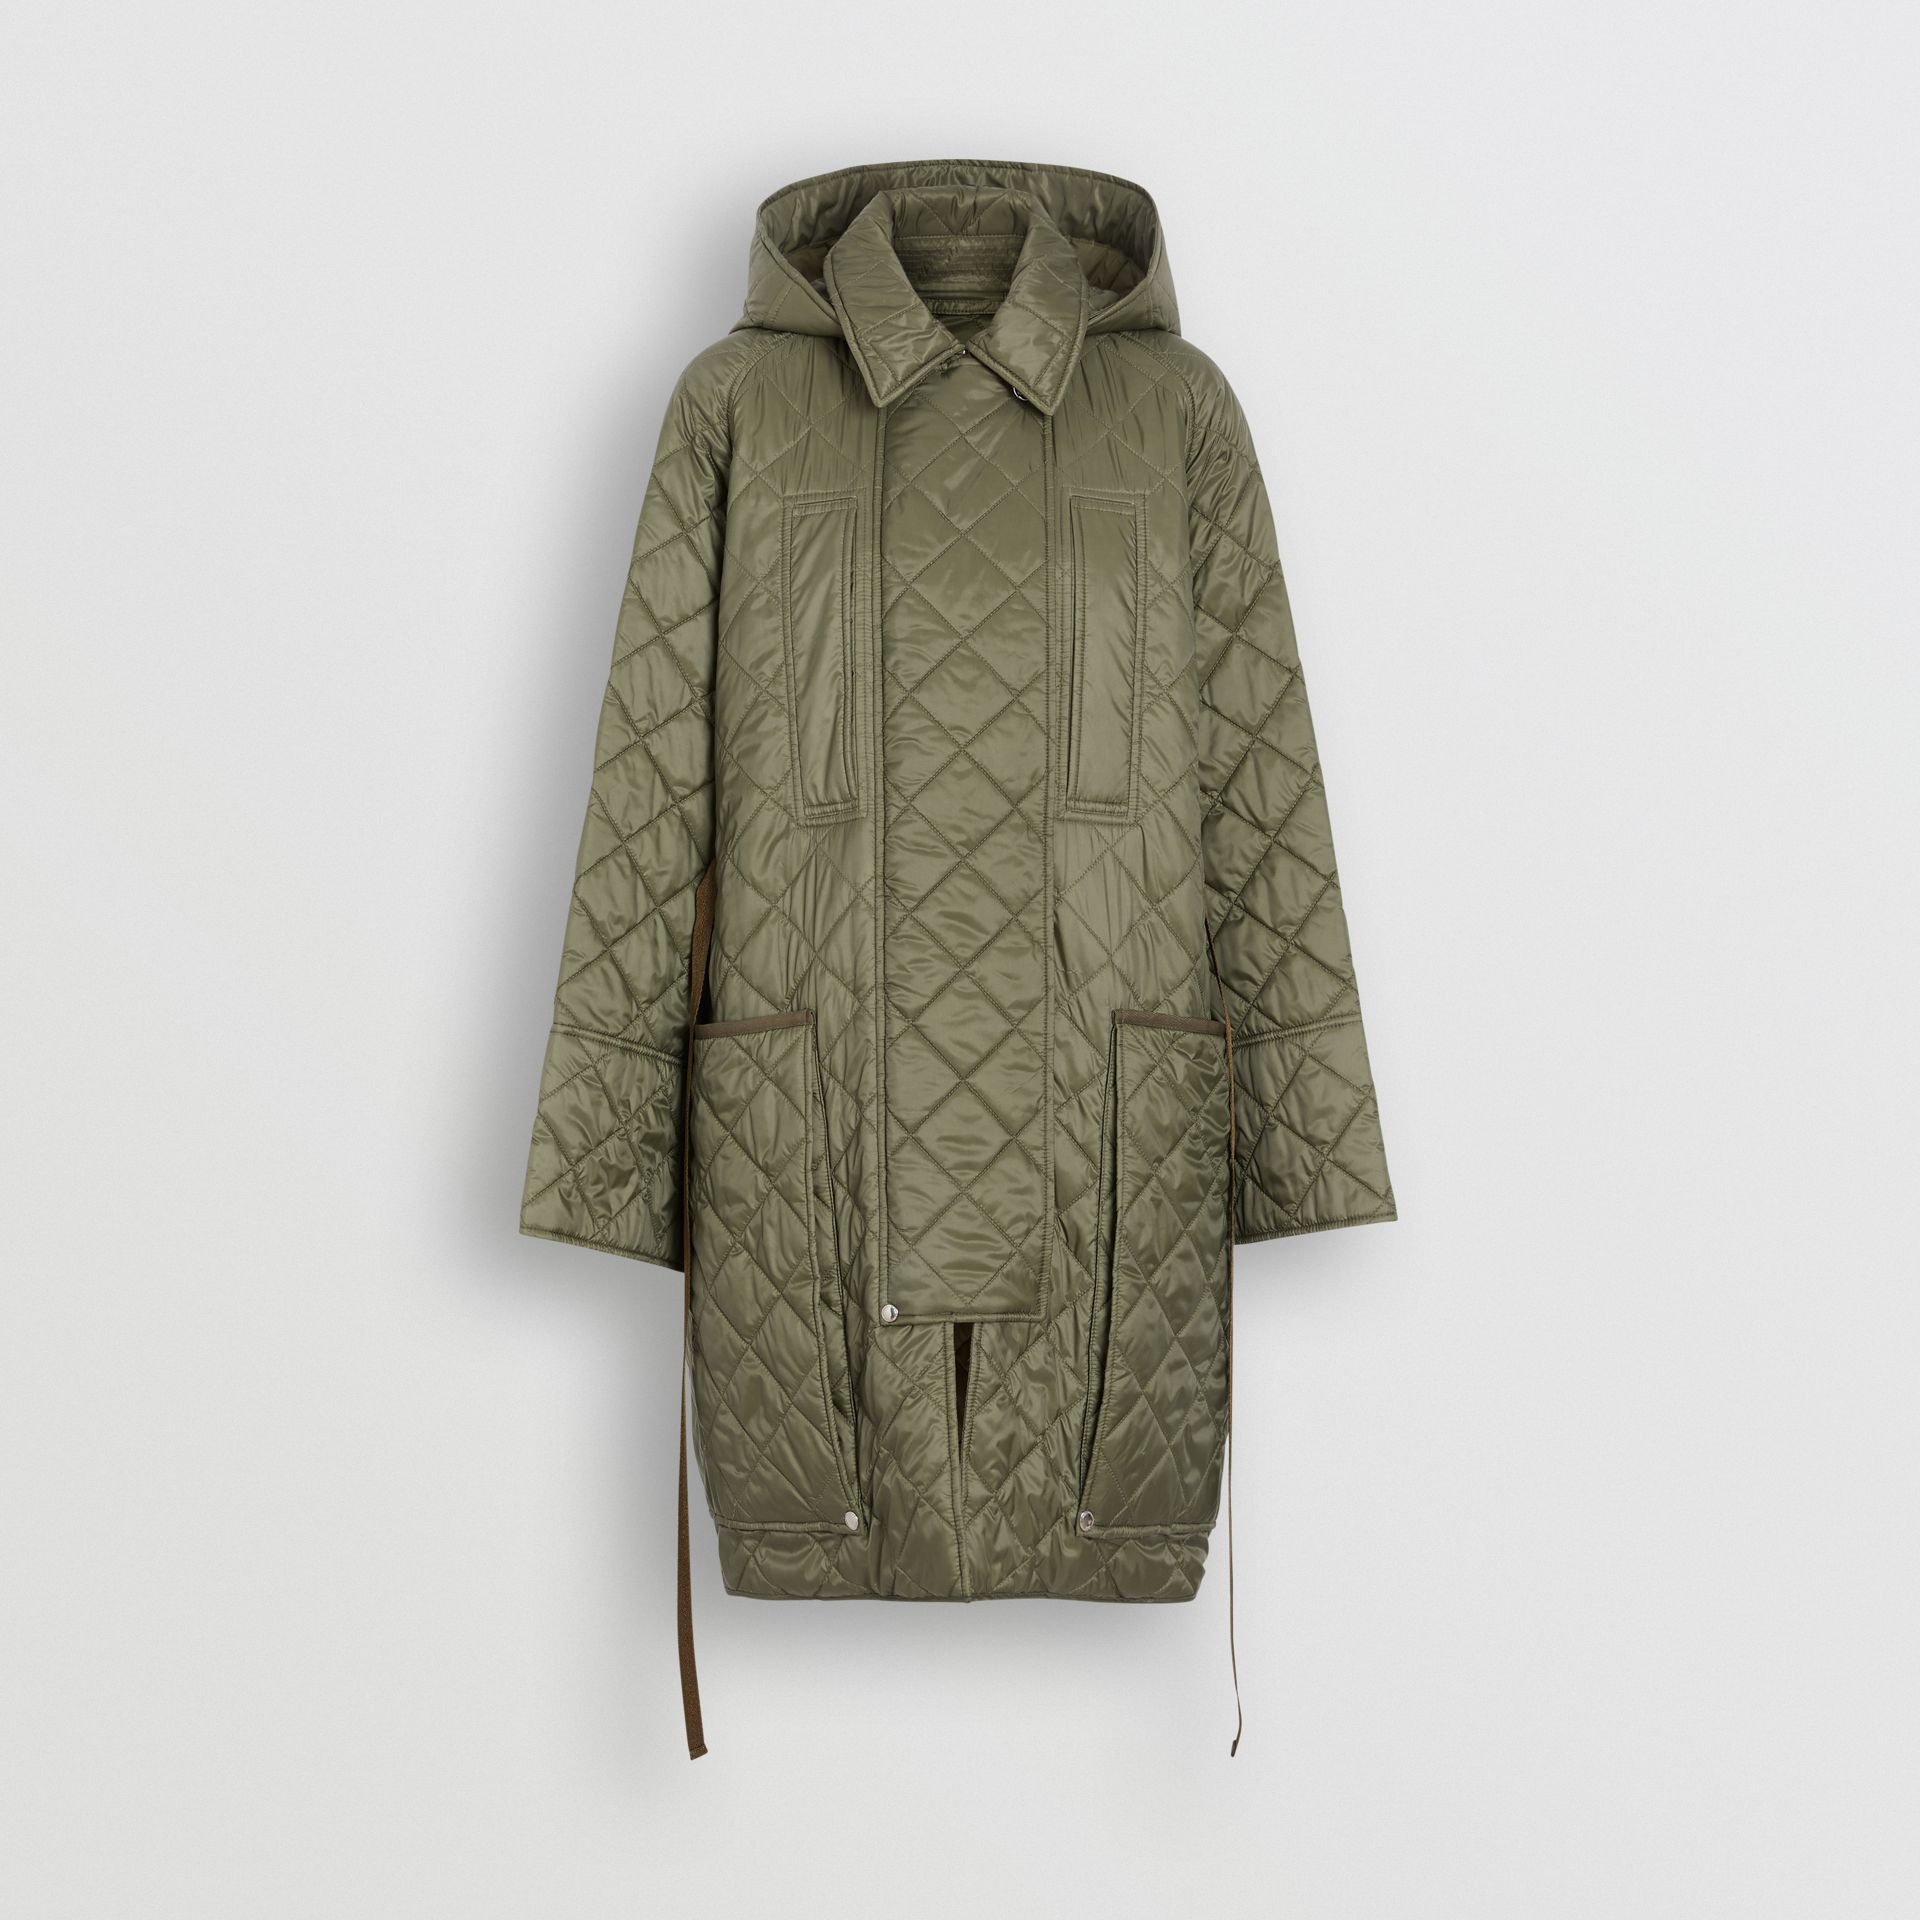 Lightweight Diamond Quilted Hooded Coat in Cadet Green - Women | Burberry United States - gallery image 3